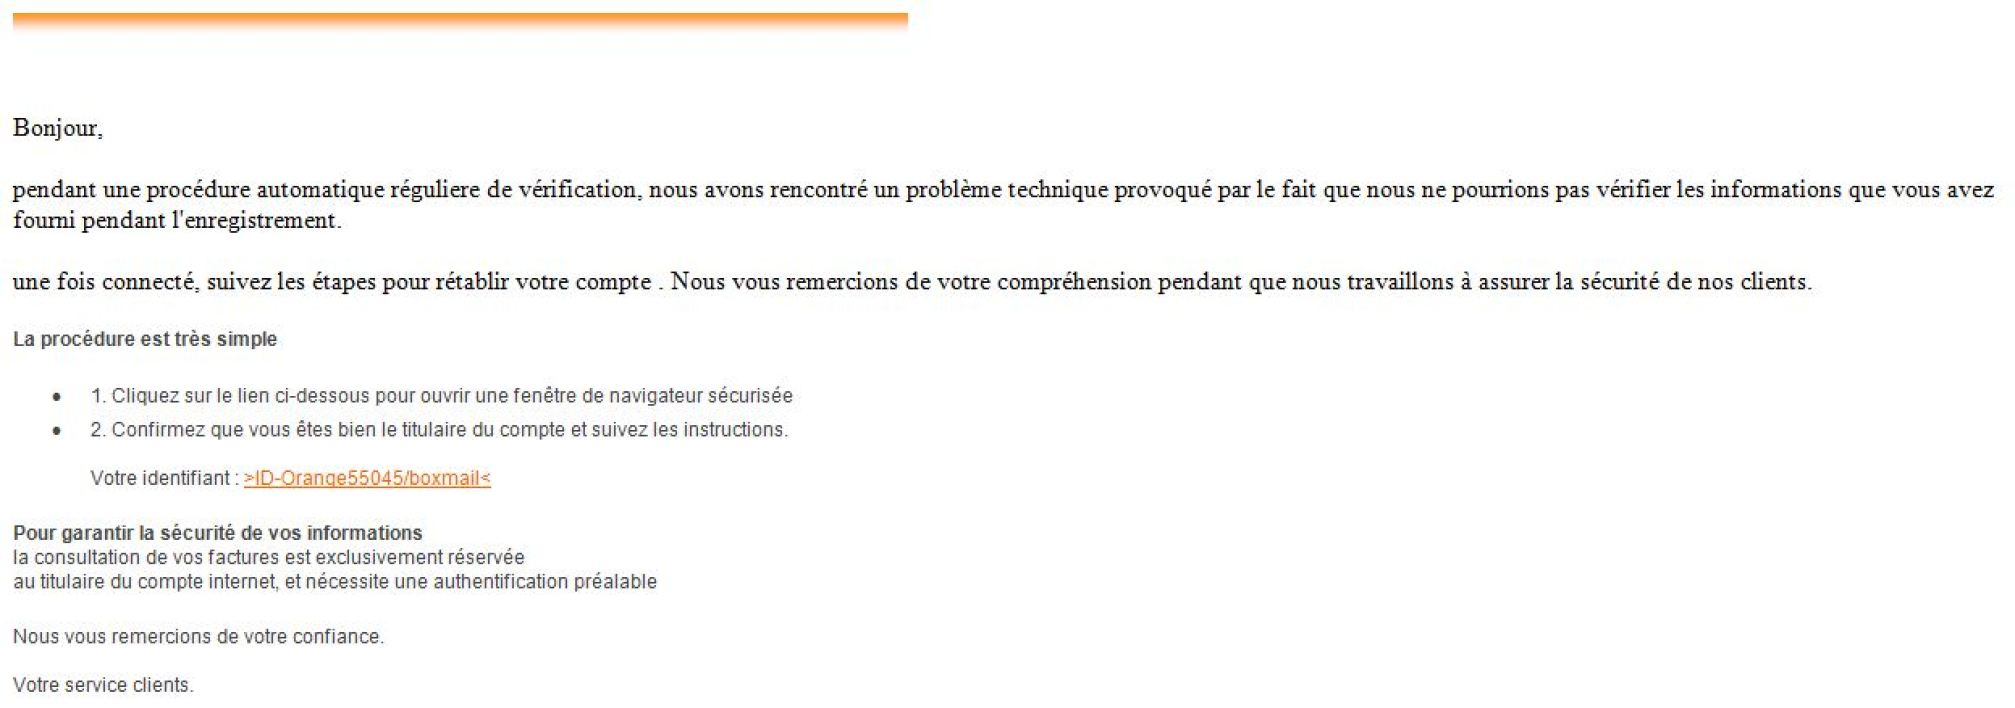 Un faux e-mail d'Orange reçu le 9 mars